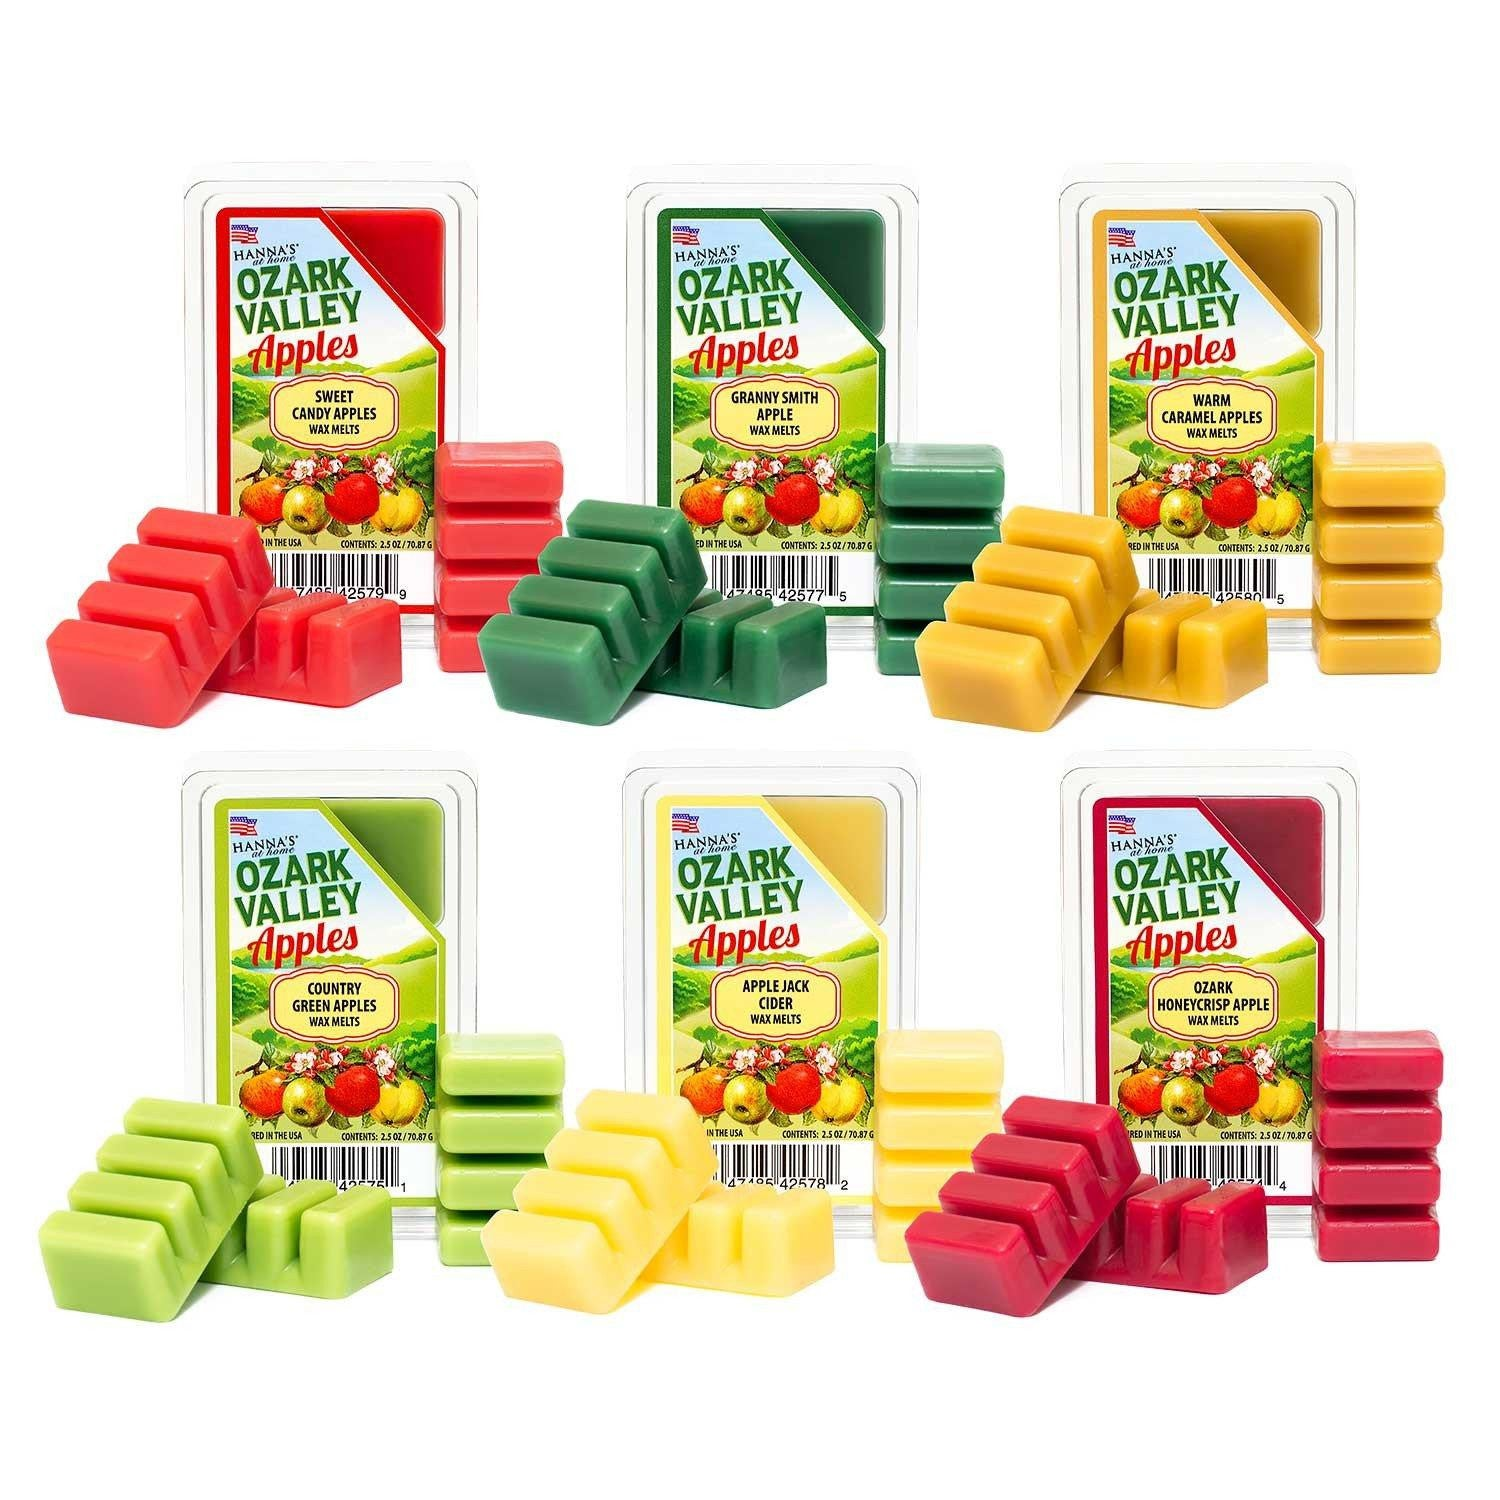 Country Green Apples Scented Wax Melts Melts Candlemart.com $ 2.49